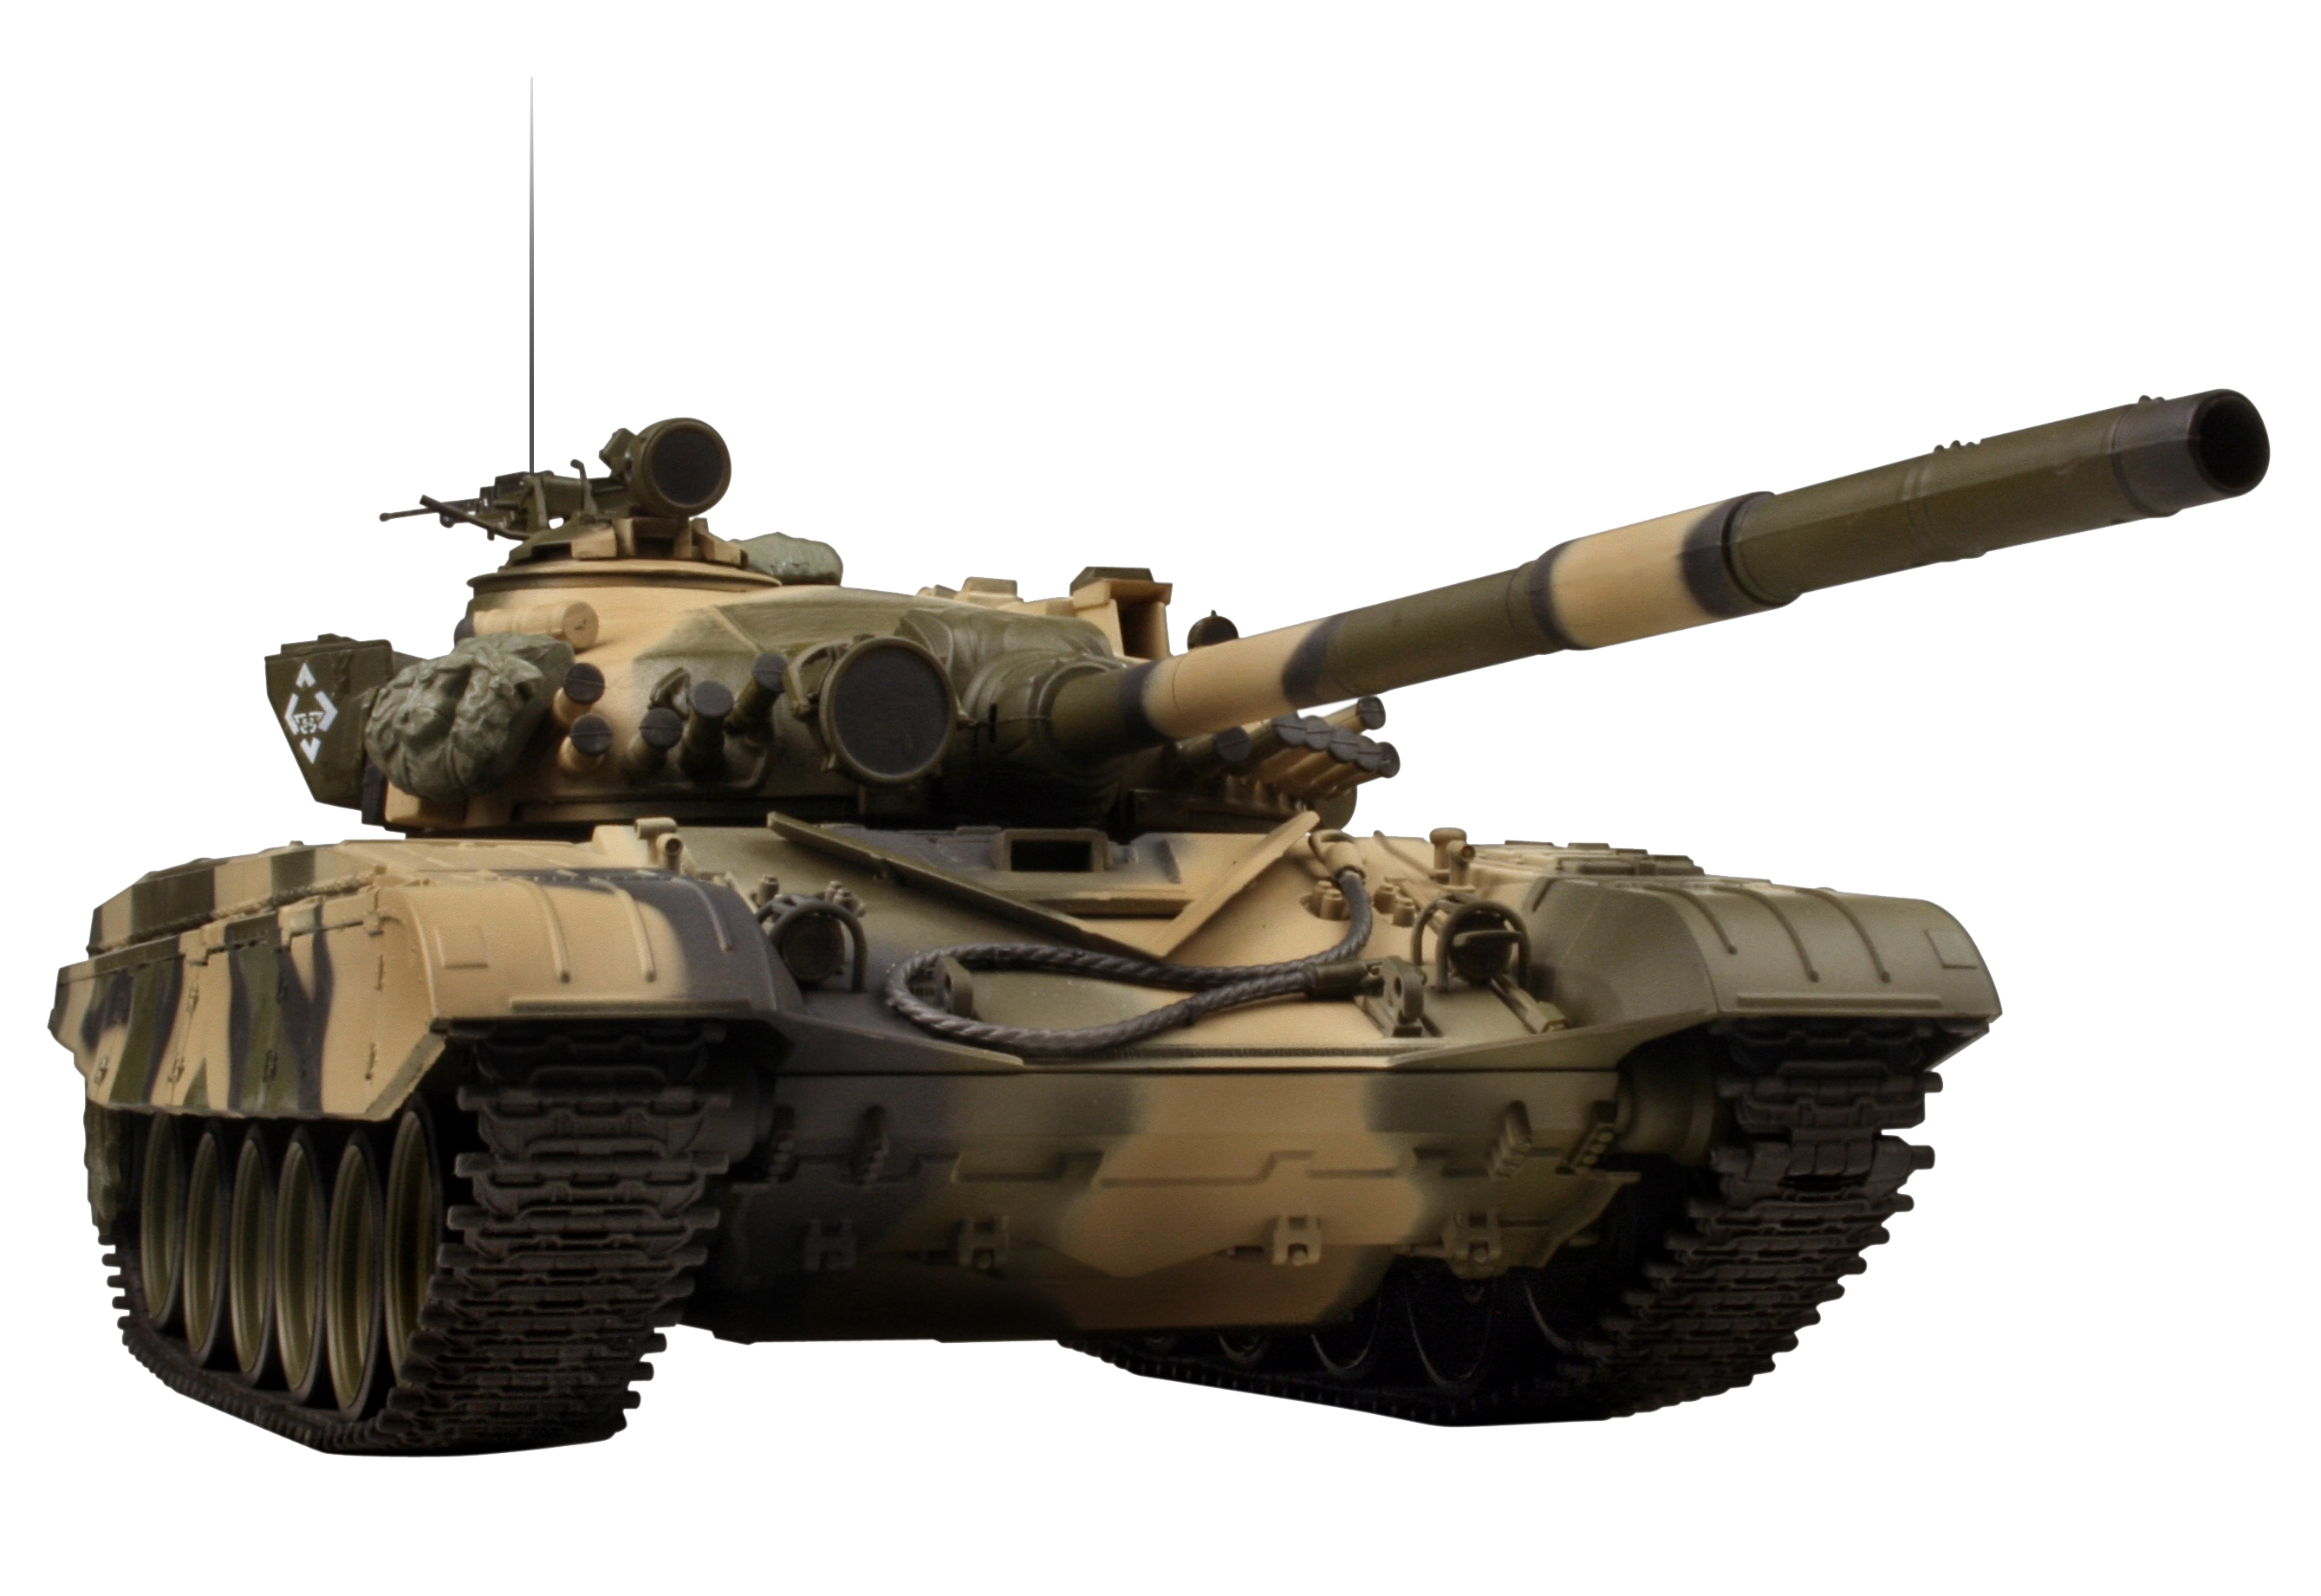 Download Tank PNG File.